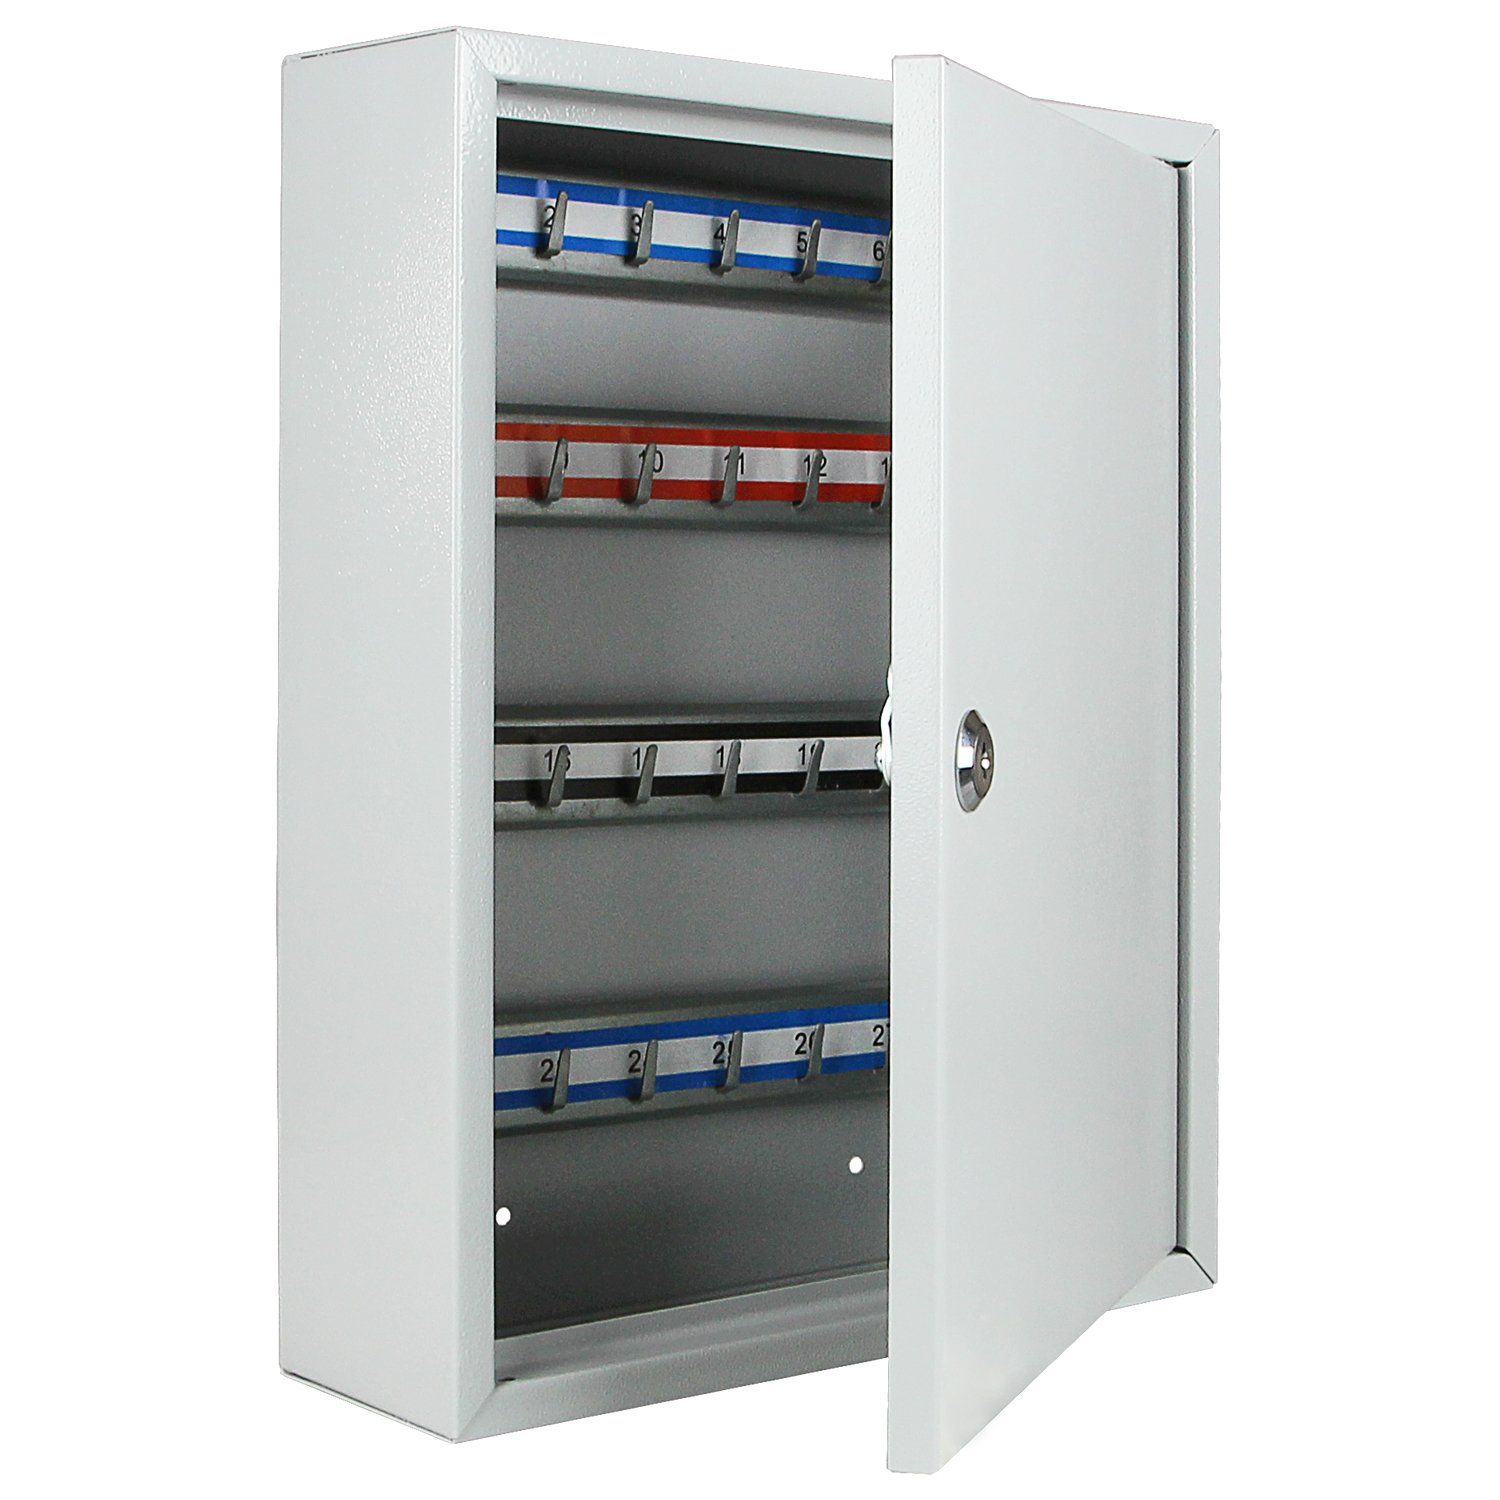 HMF 13549-07 Key Cabinet, 42 Keys 35 x 27 x 8 cm , light gray